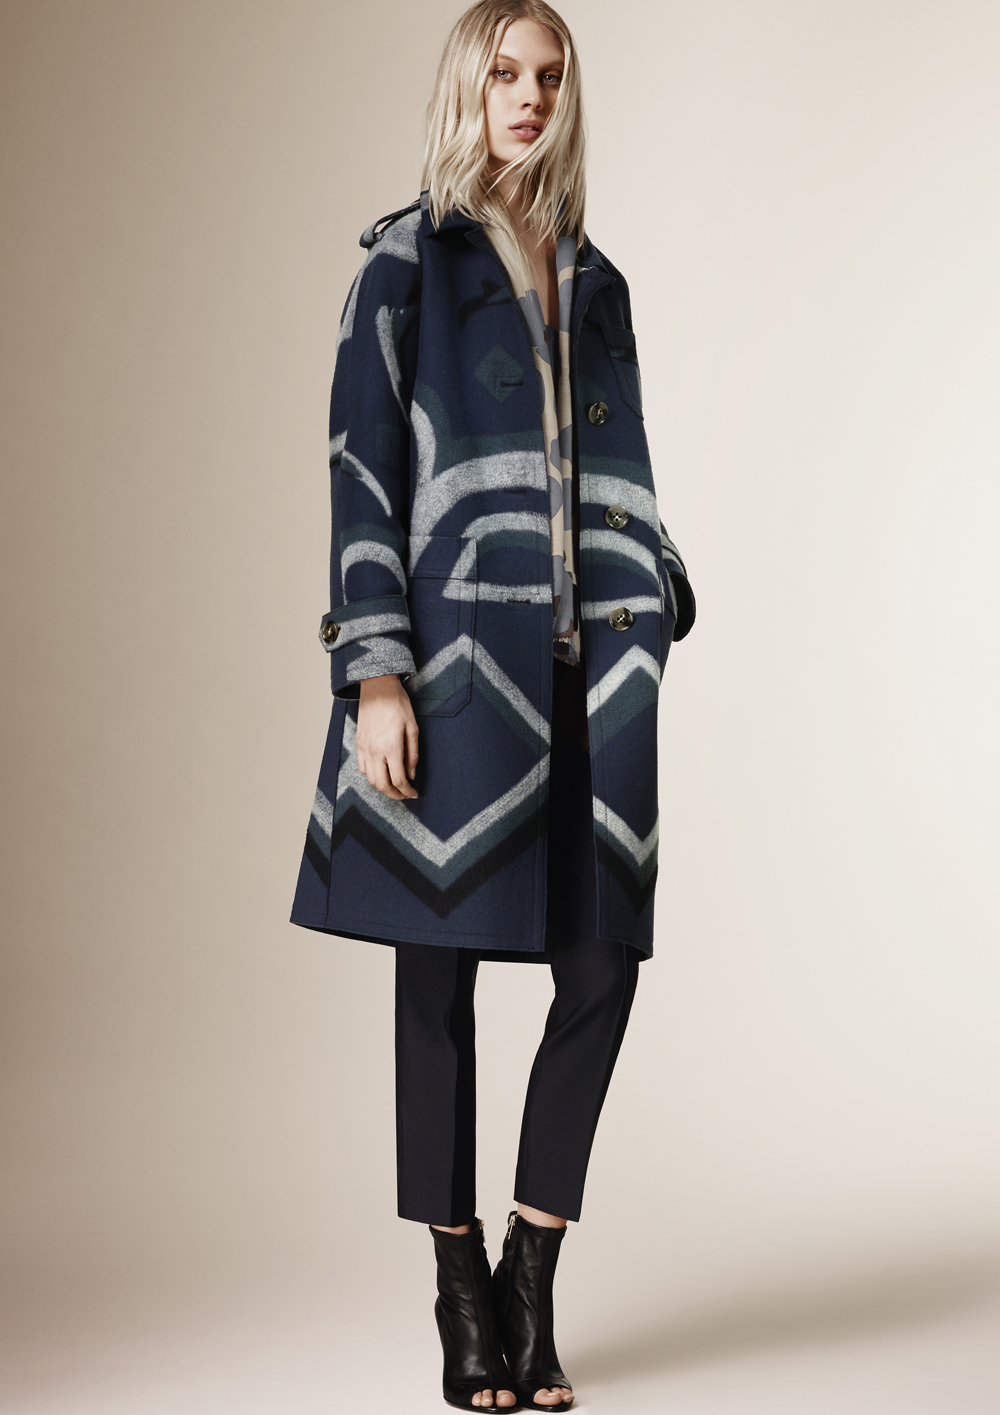 Burberry_Prorsum_Womenswear_Autumn_Winter_2015_Pre-Collection_16